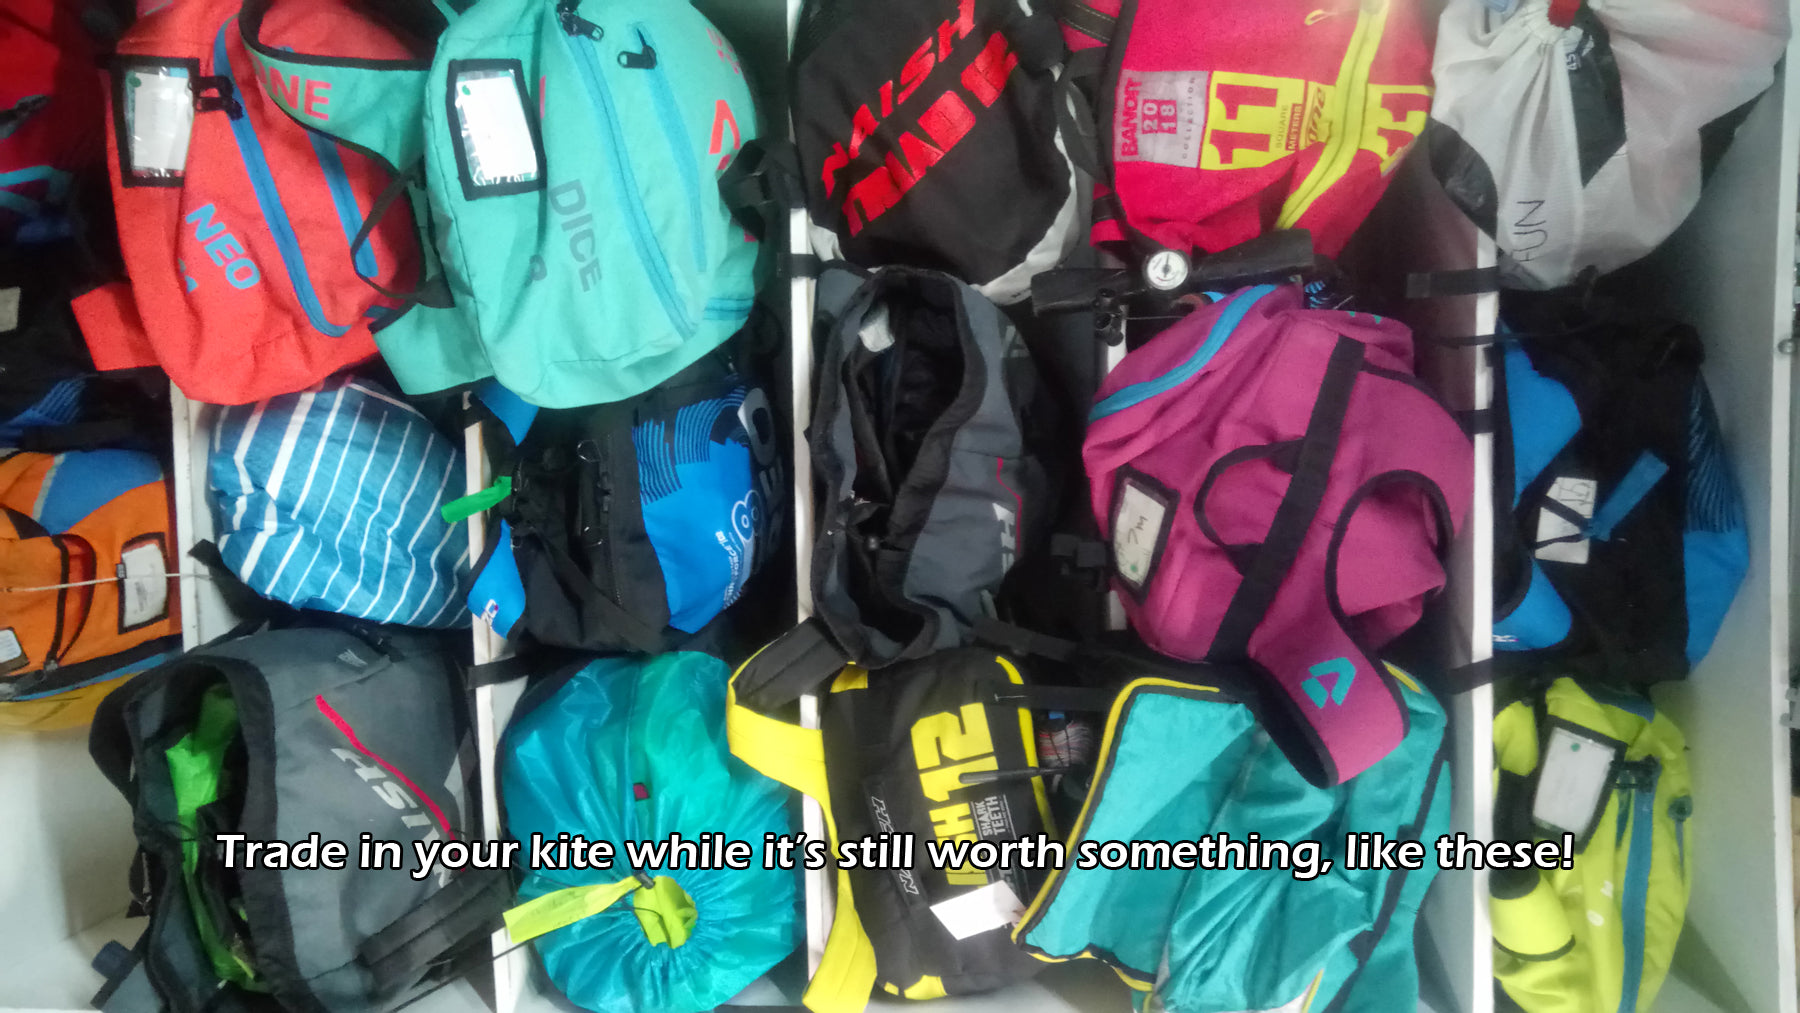 Trade in kitesurfing equipment while it's still worth something second hand